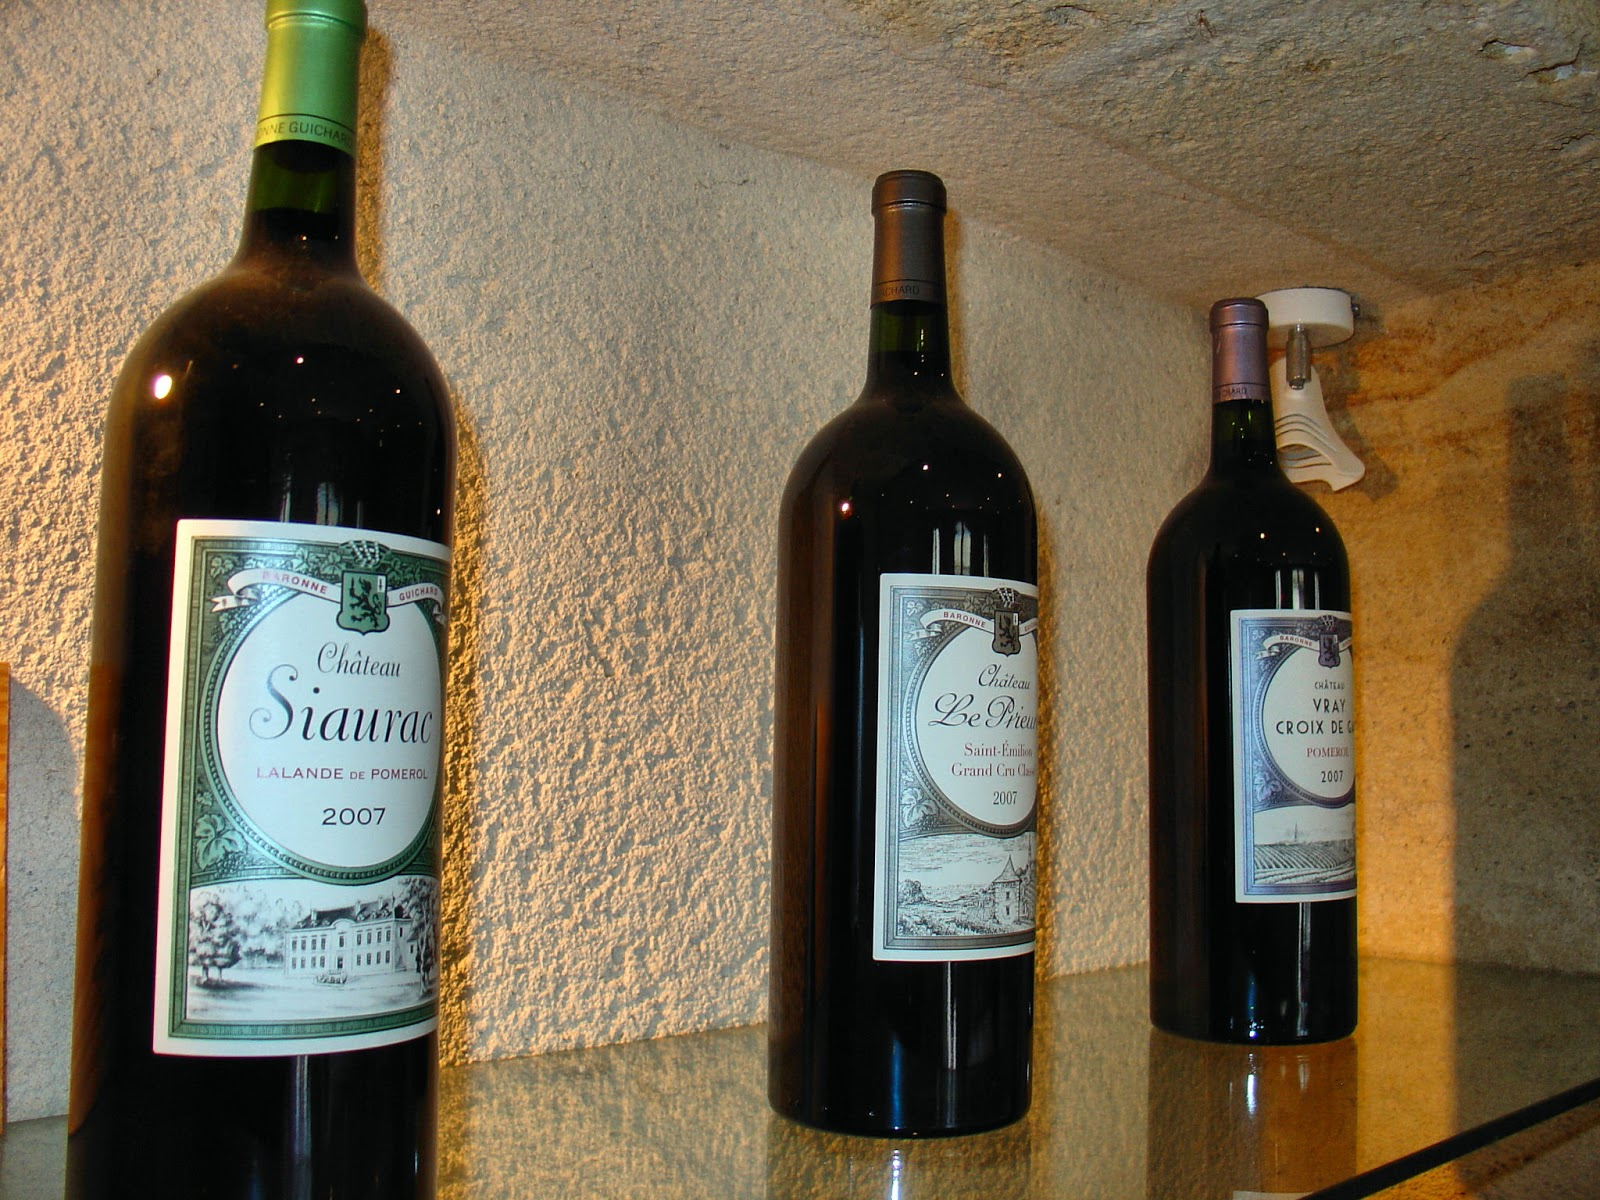 The Chateau Siaurac's vintages include Chateau Siaurac, Chateau Vray Croix de Gay and Chateau Le Prieuré.